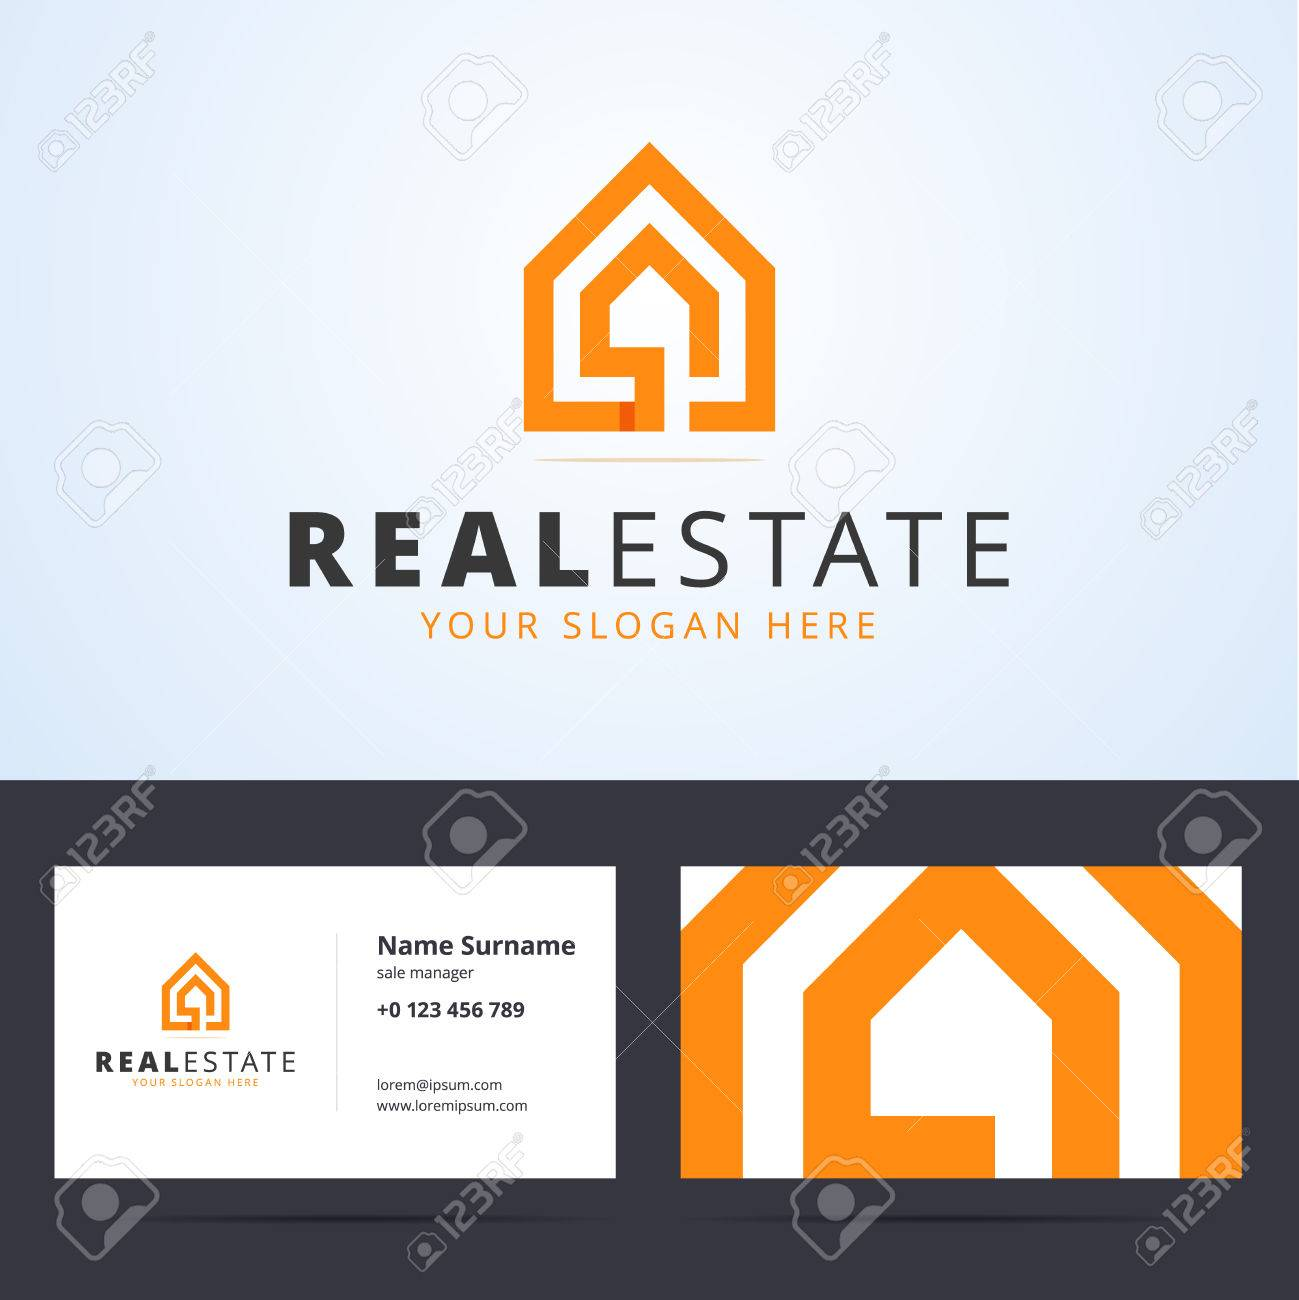 Real estate logo real estate business card template real estate real estate logo real estate business card template real estate sign with home shape reheart Images